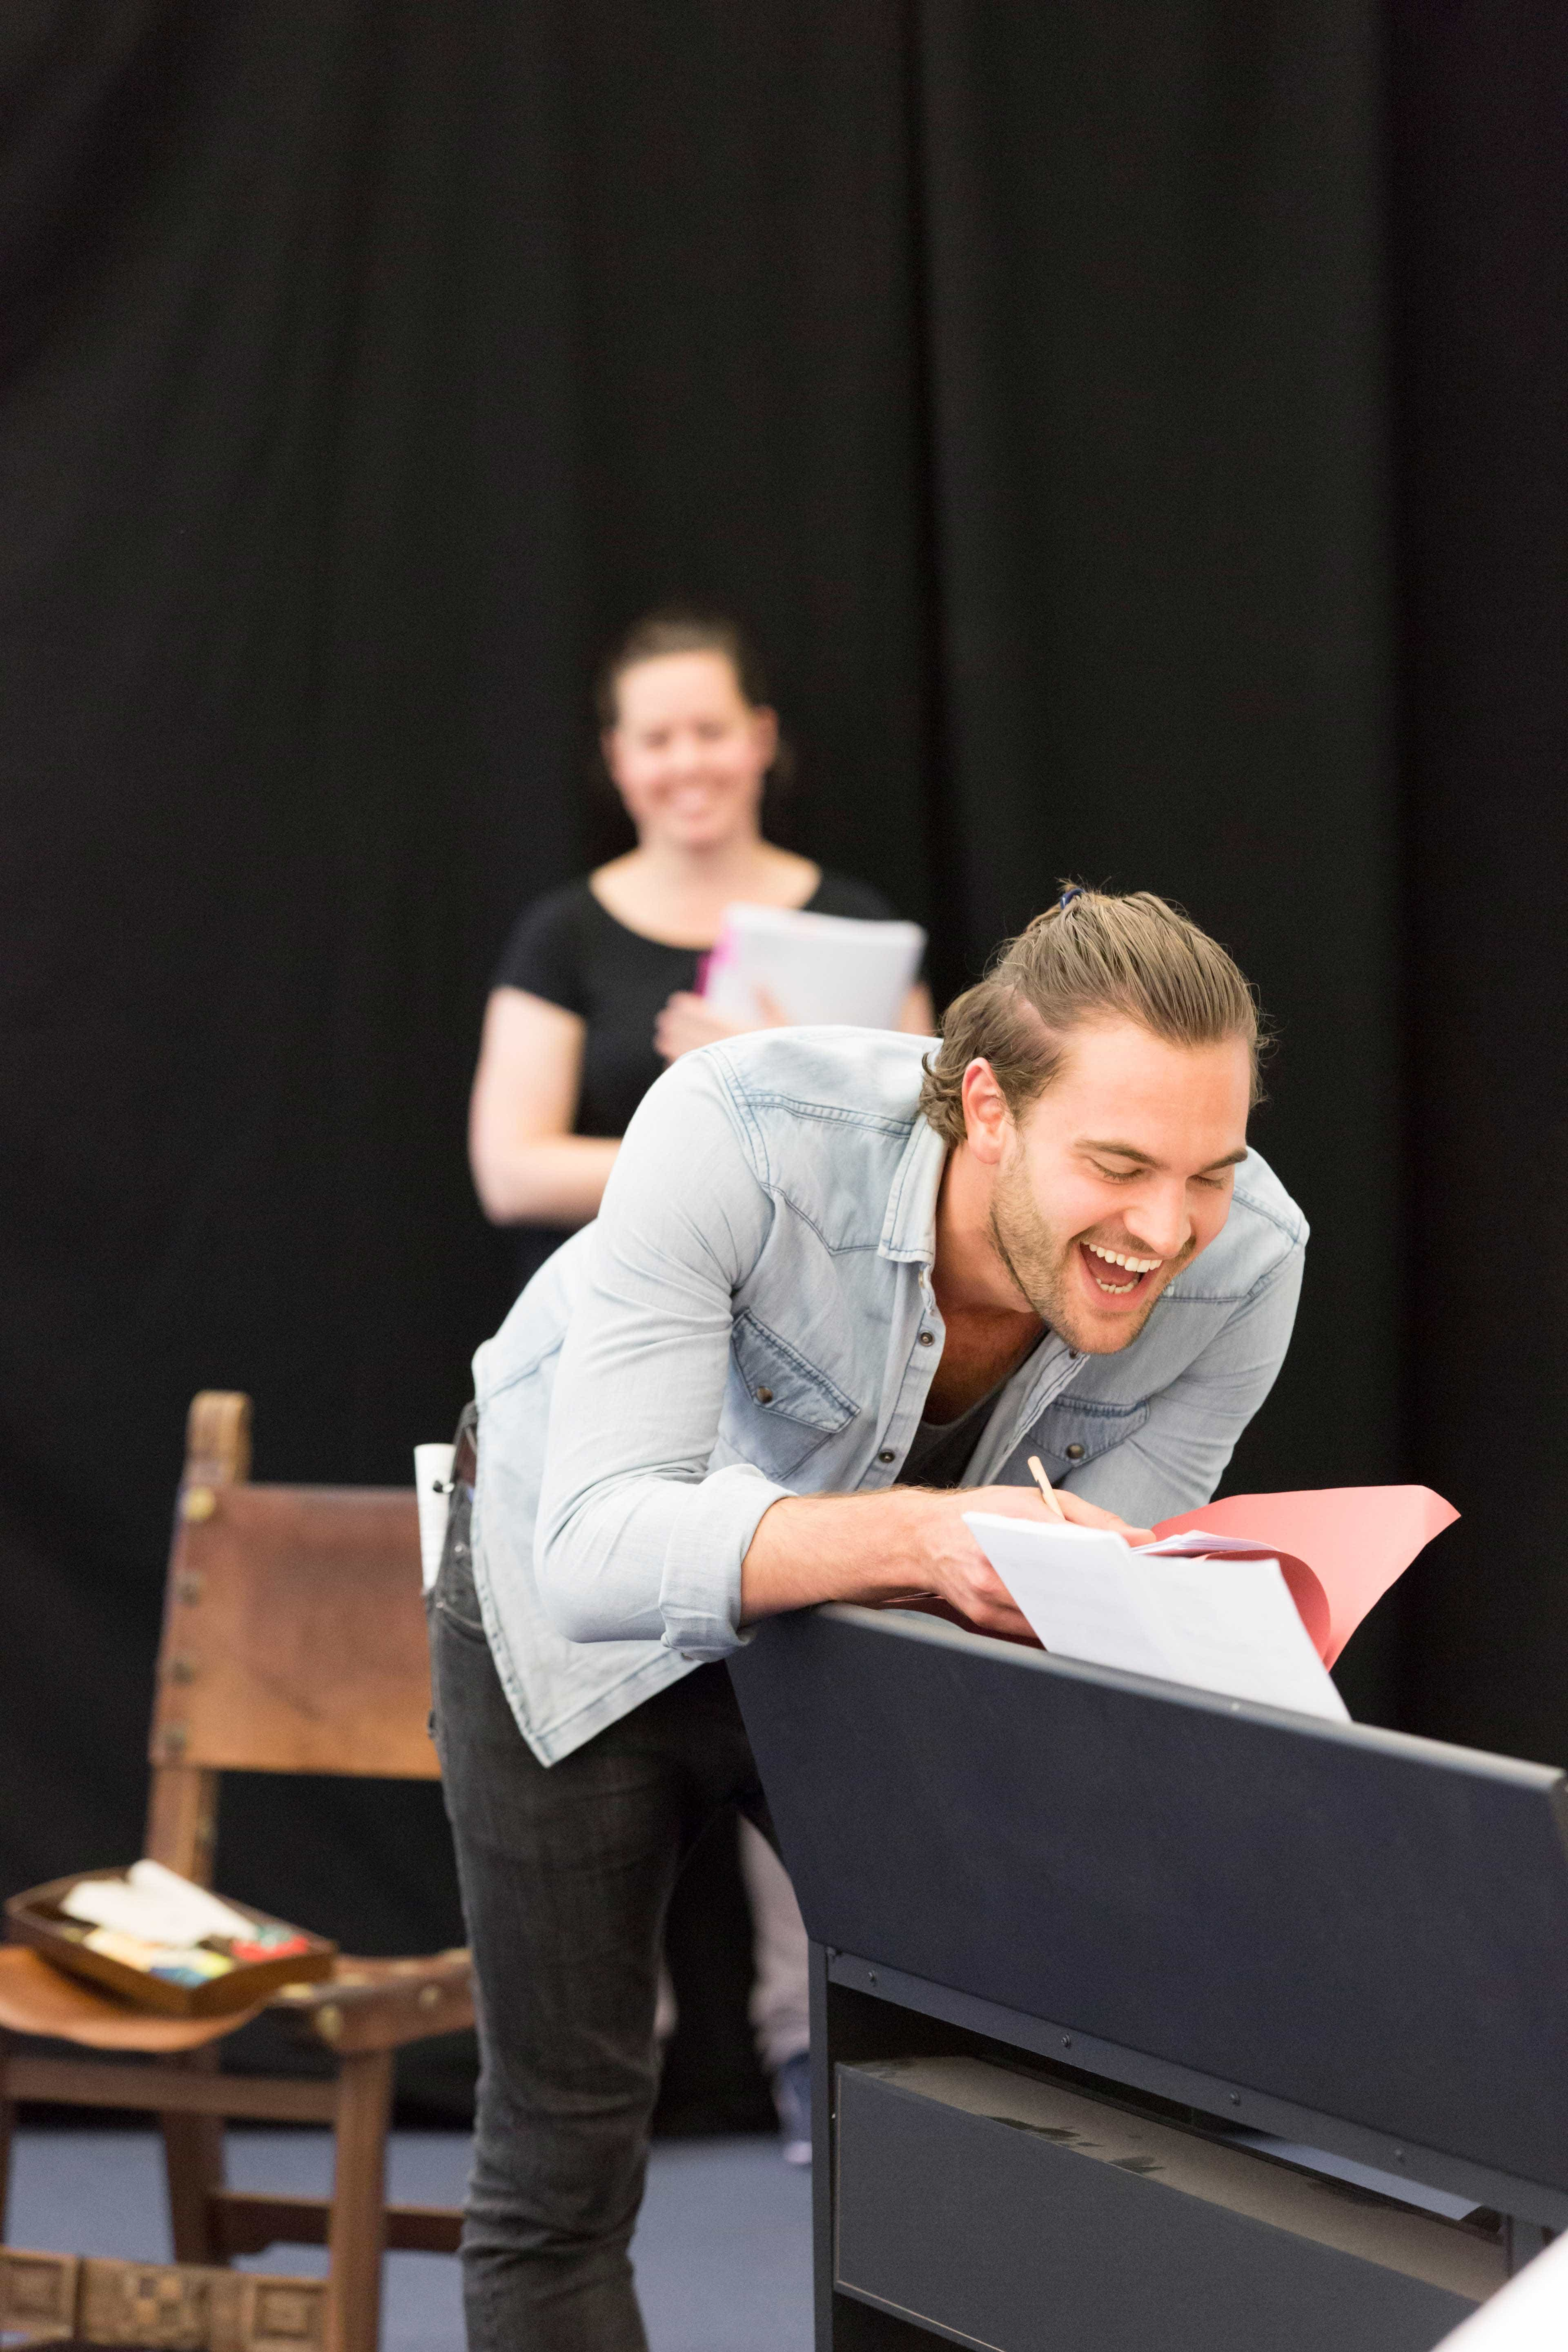 Tom Bateman in rehearsals for Harlequinade. Credit Johan Persson | Rehearsal images of Kenneth Branagh's Harlequinade